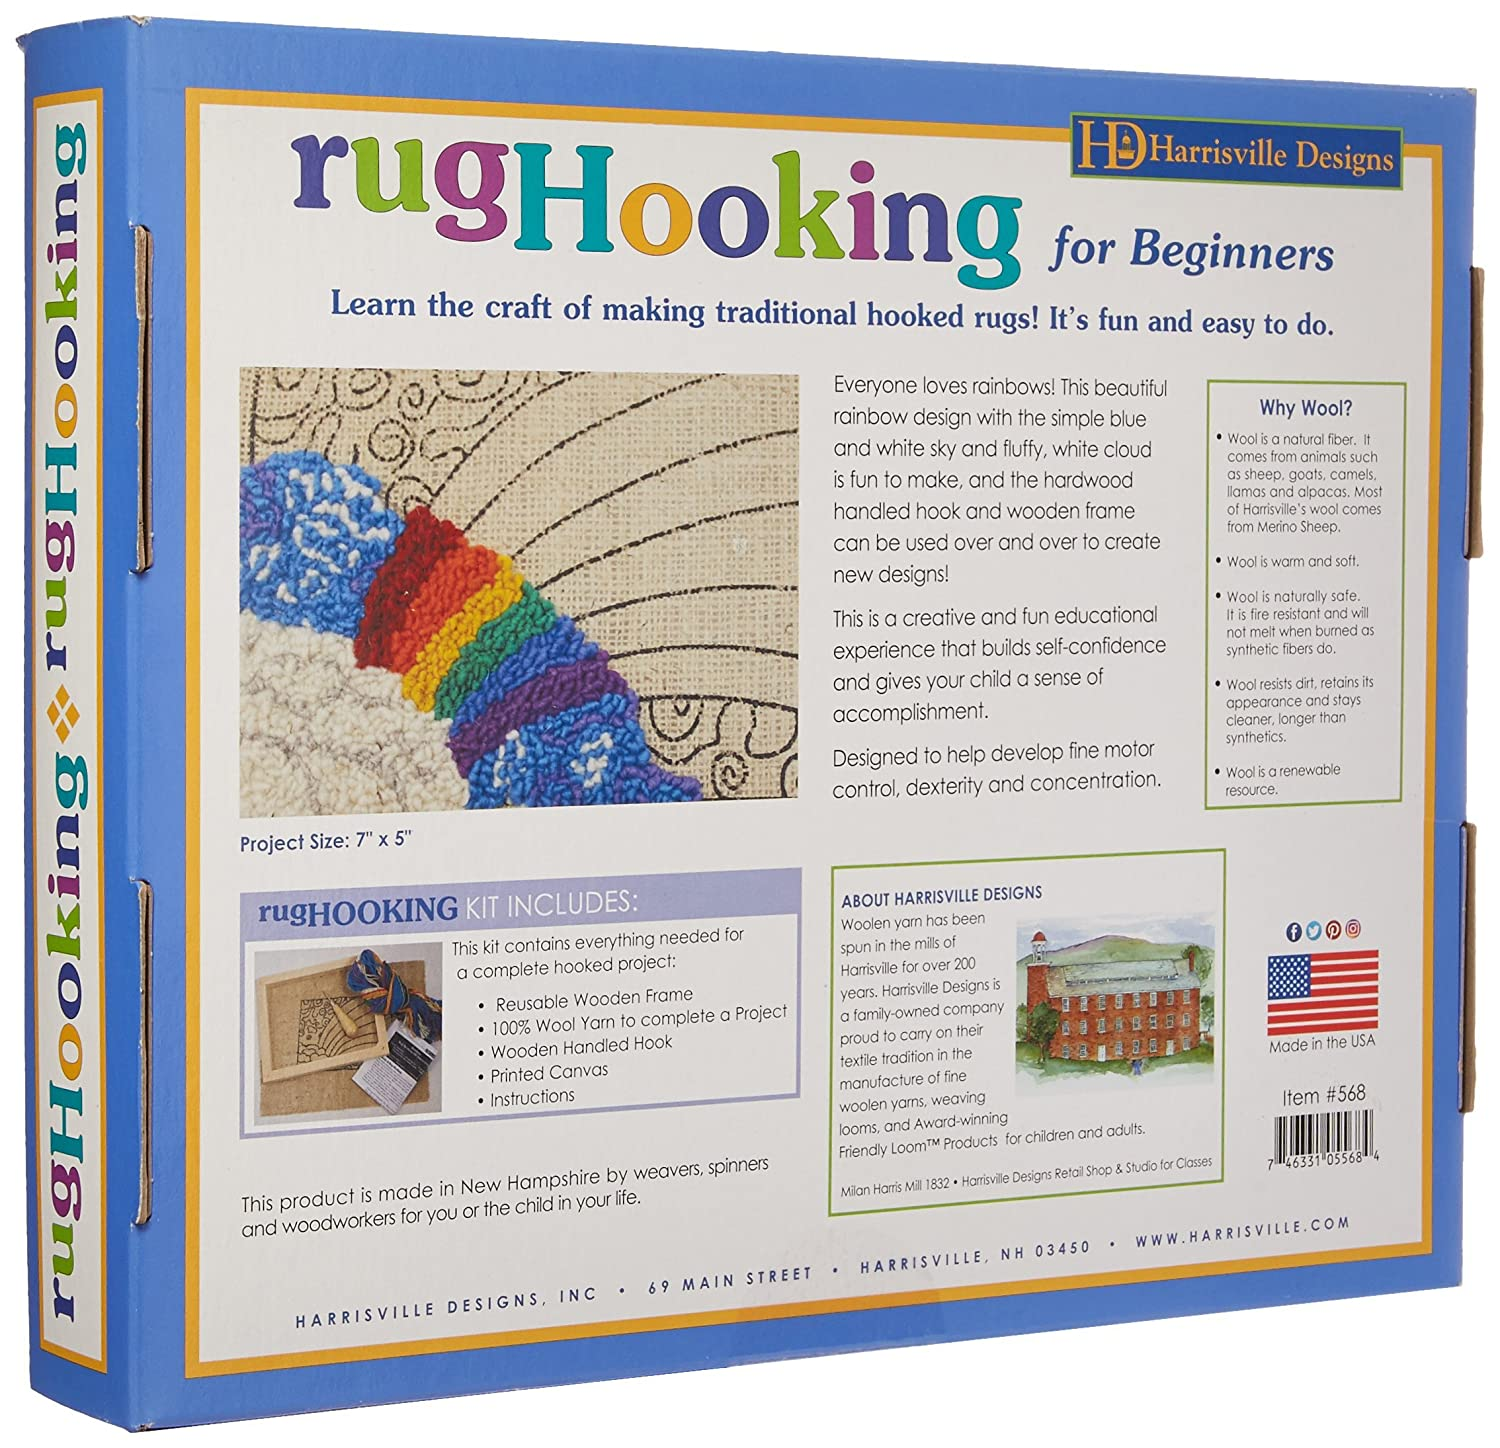 Amazon.com: Harrisville Designs Traditional Rug Hooking: Toys & Games